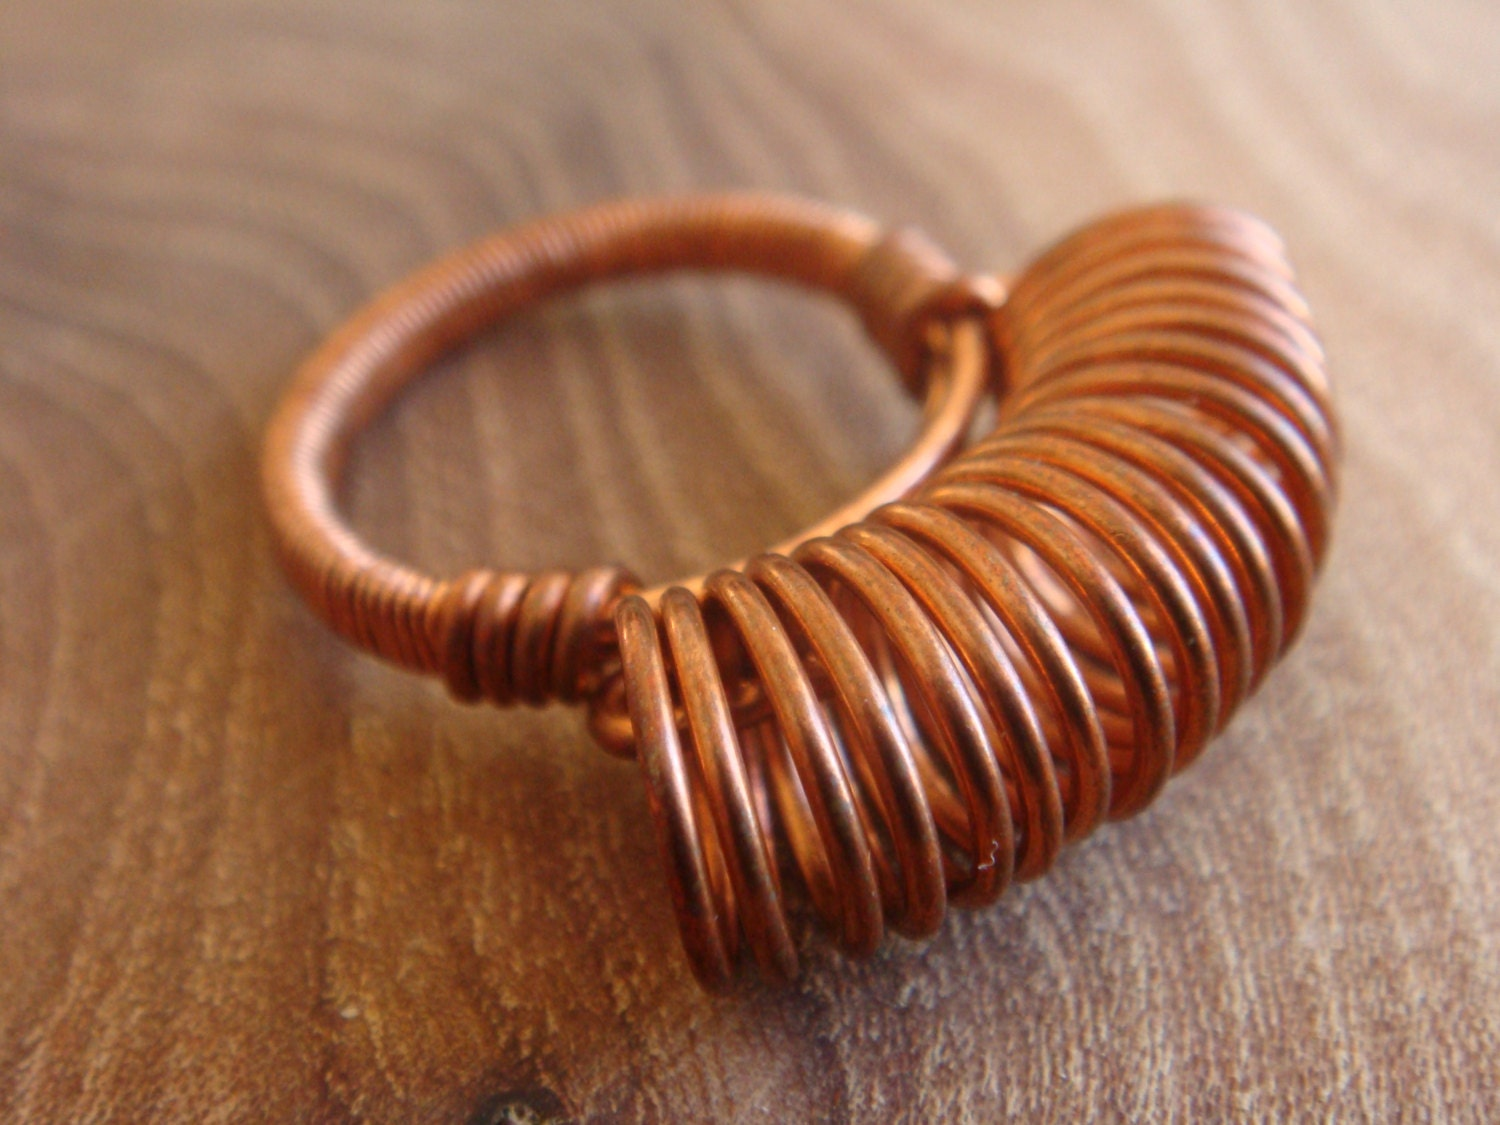 how to clean copper rings